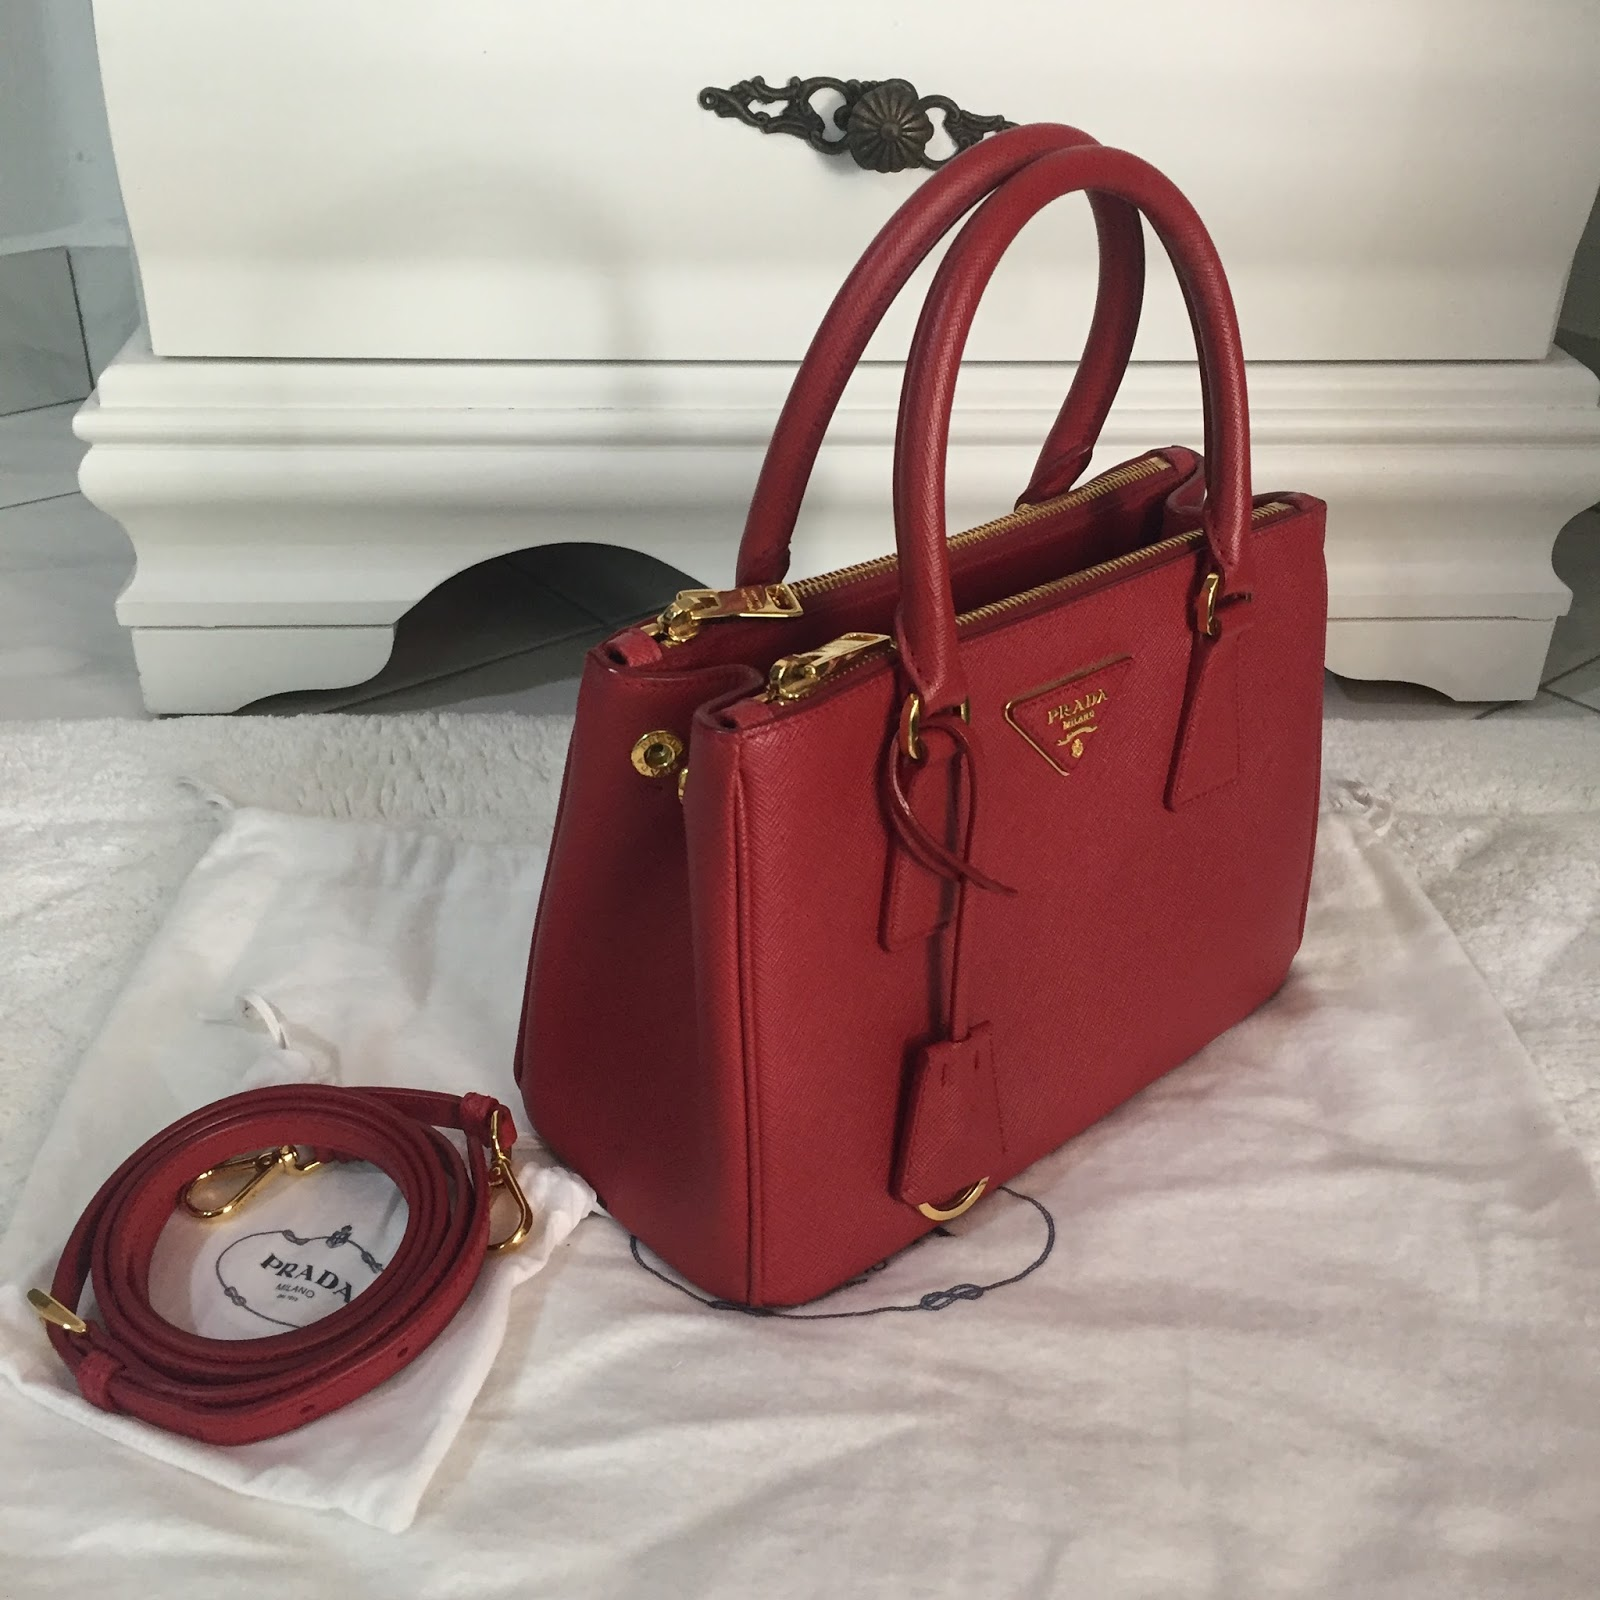 f62b1ab3066 B e e B a a C L O S E T  Prada Galleria Saffiano Leather Bag (Pre-loved)